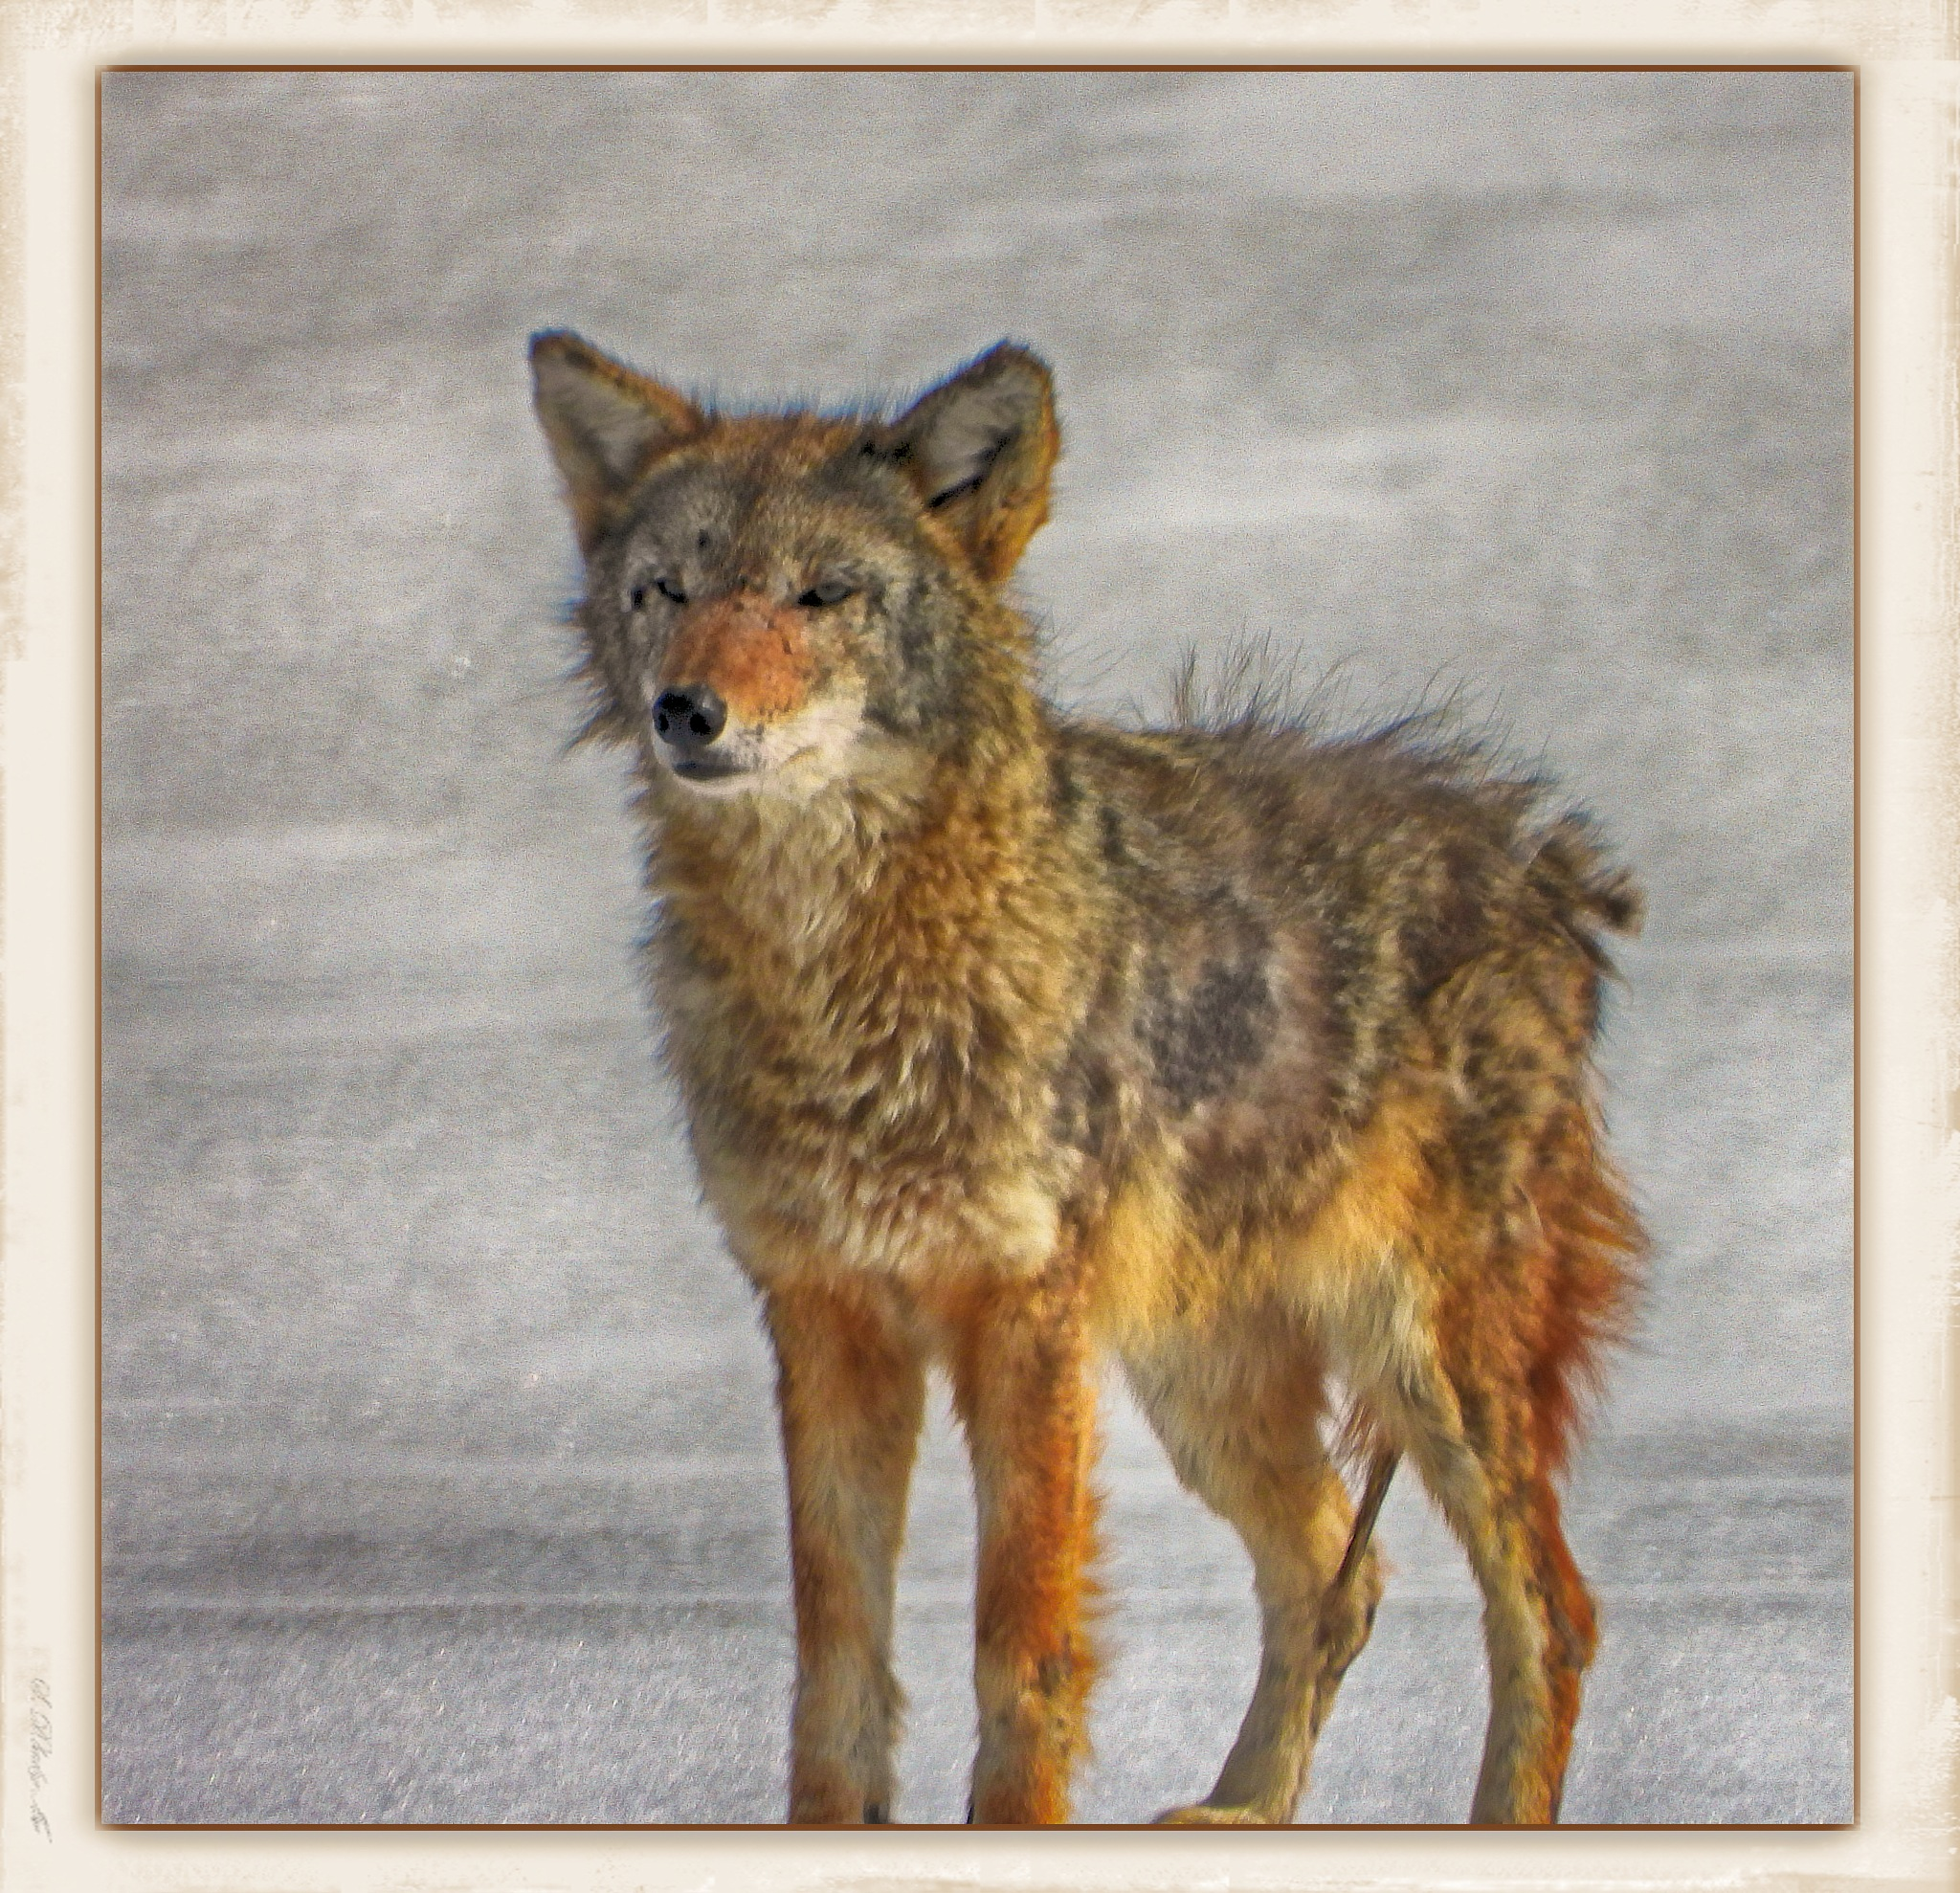 Battle Worn Tough Old Coyote by photomanpaul77